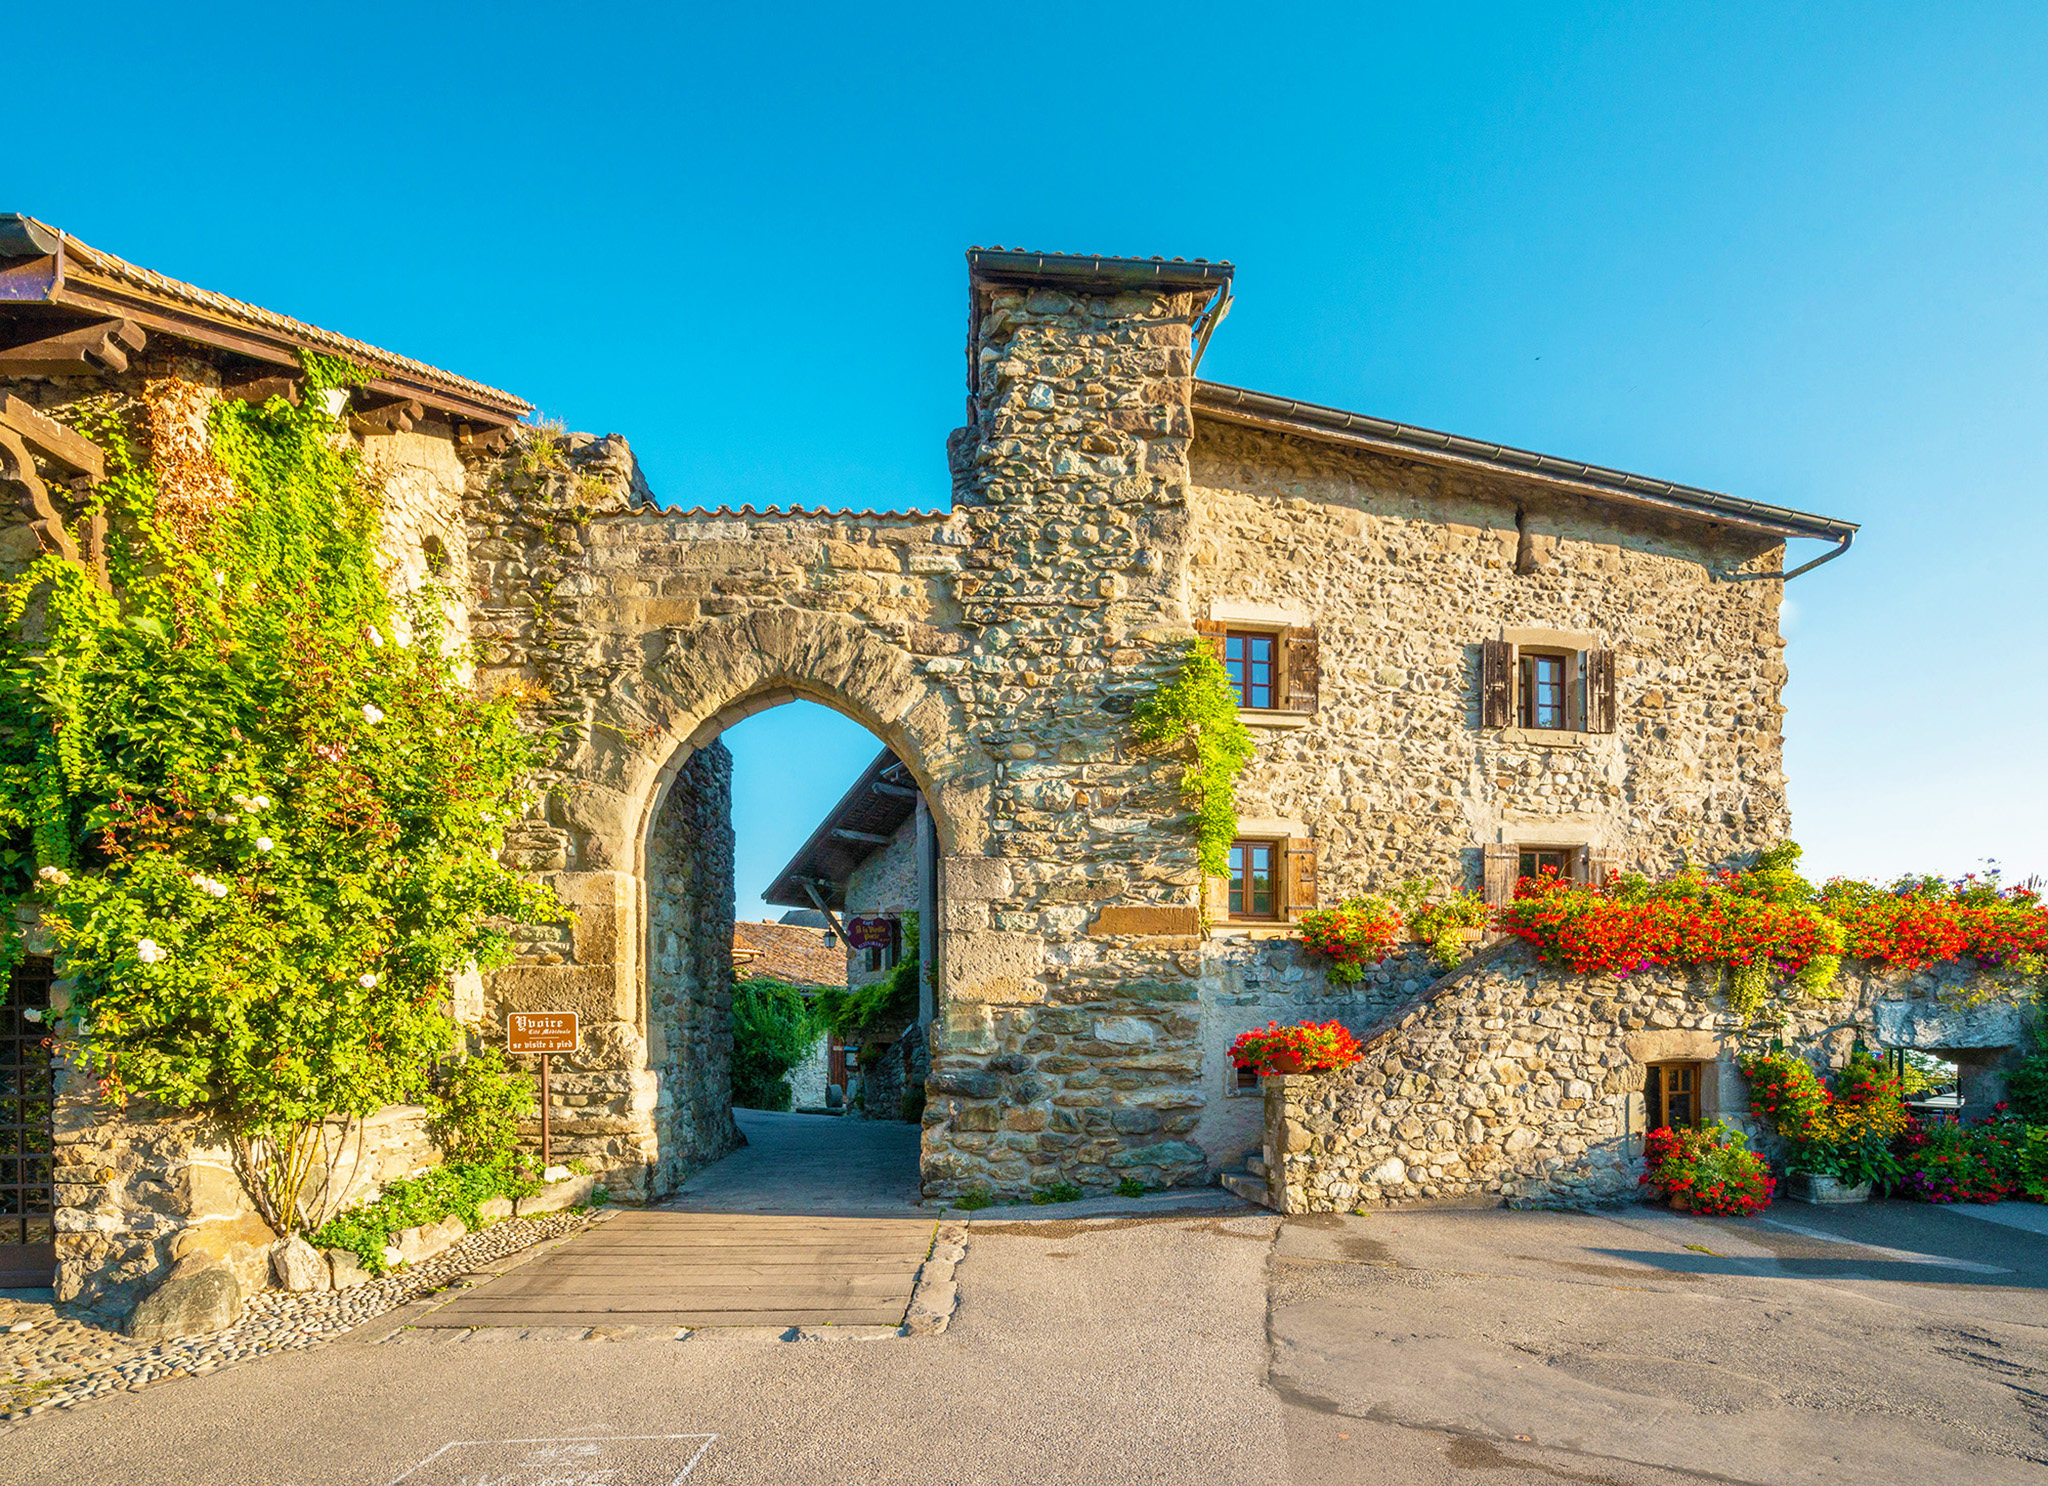 kt_2020_380_Keytours_excursions_Swisstours_yvoire1_2048_10